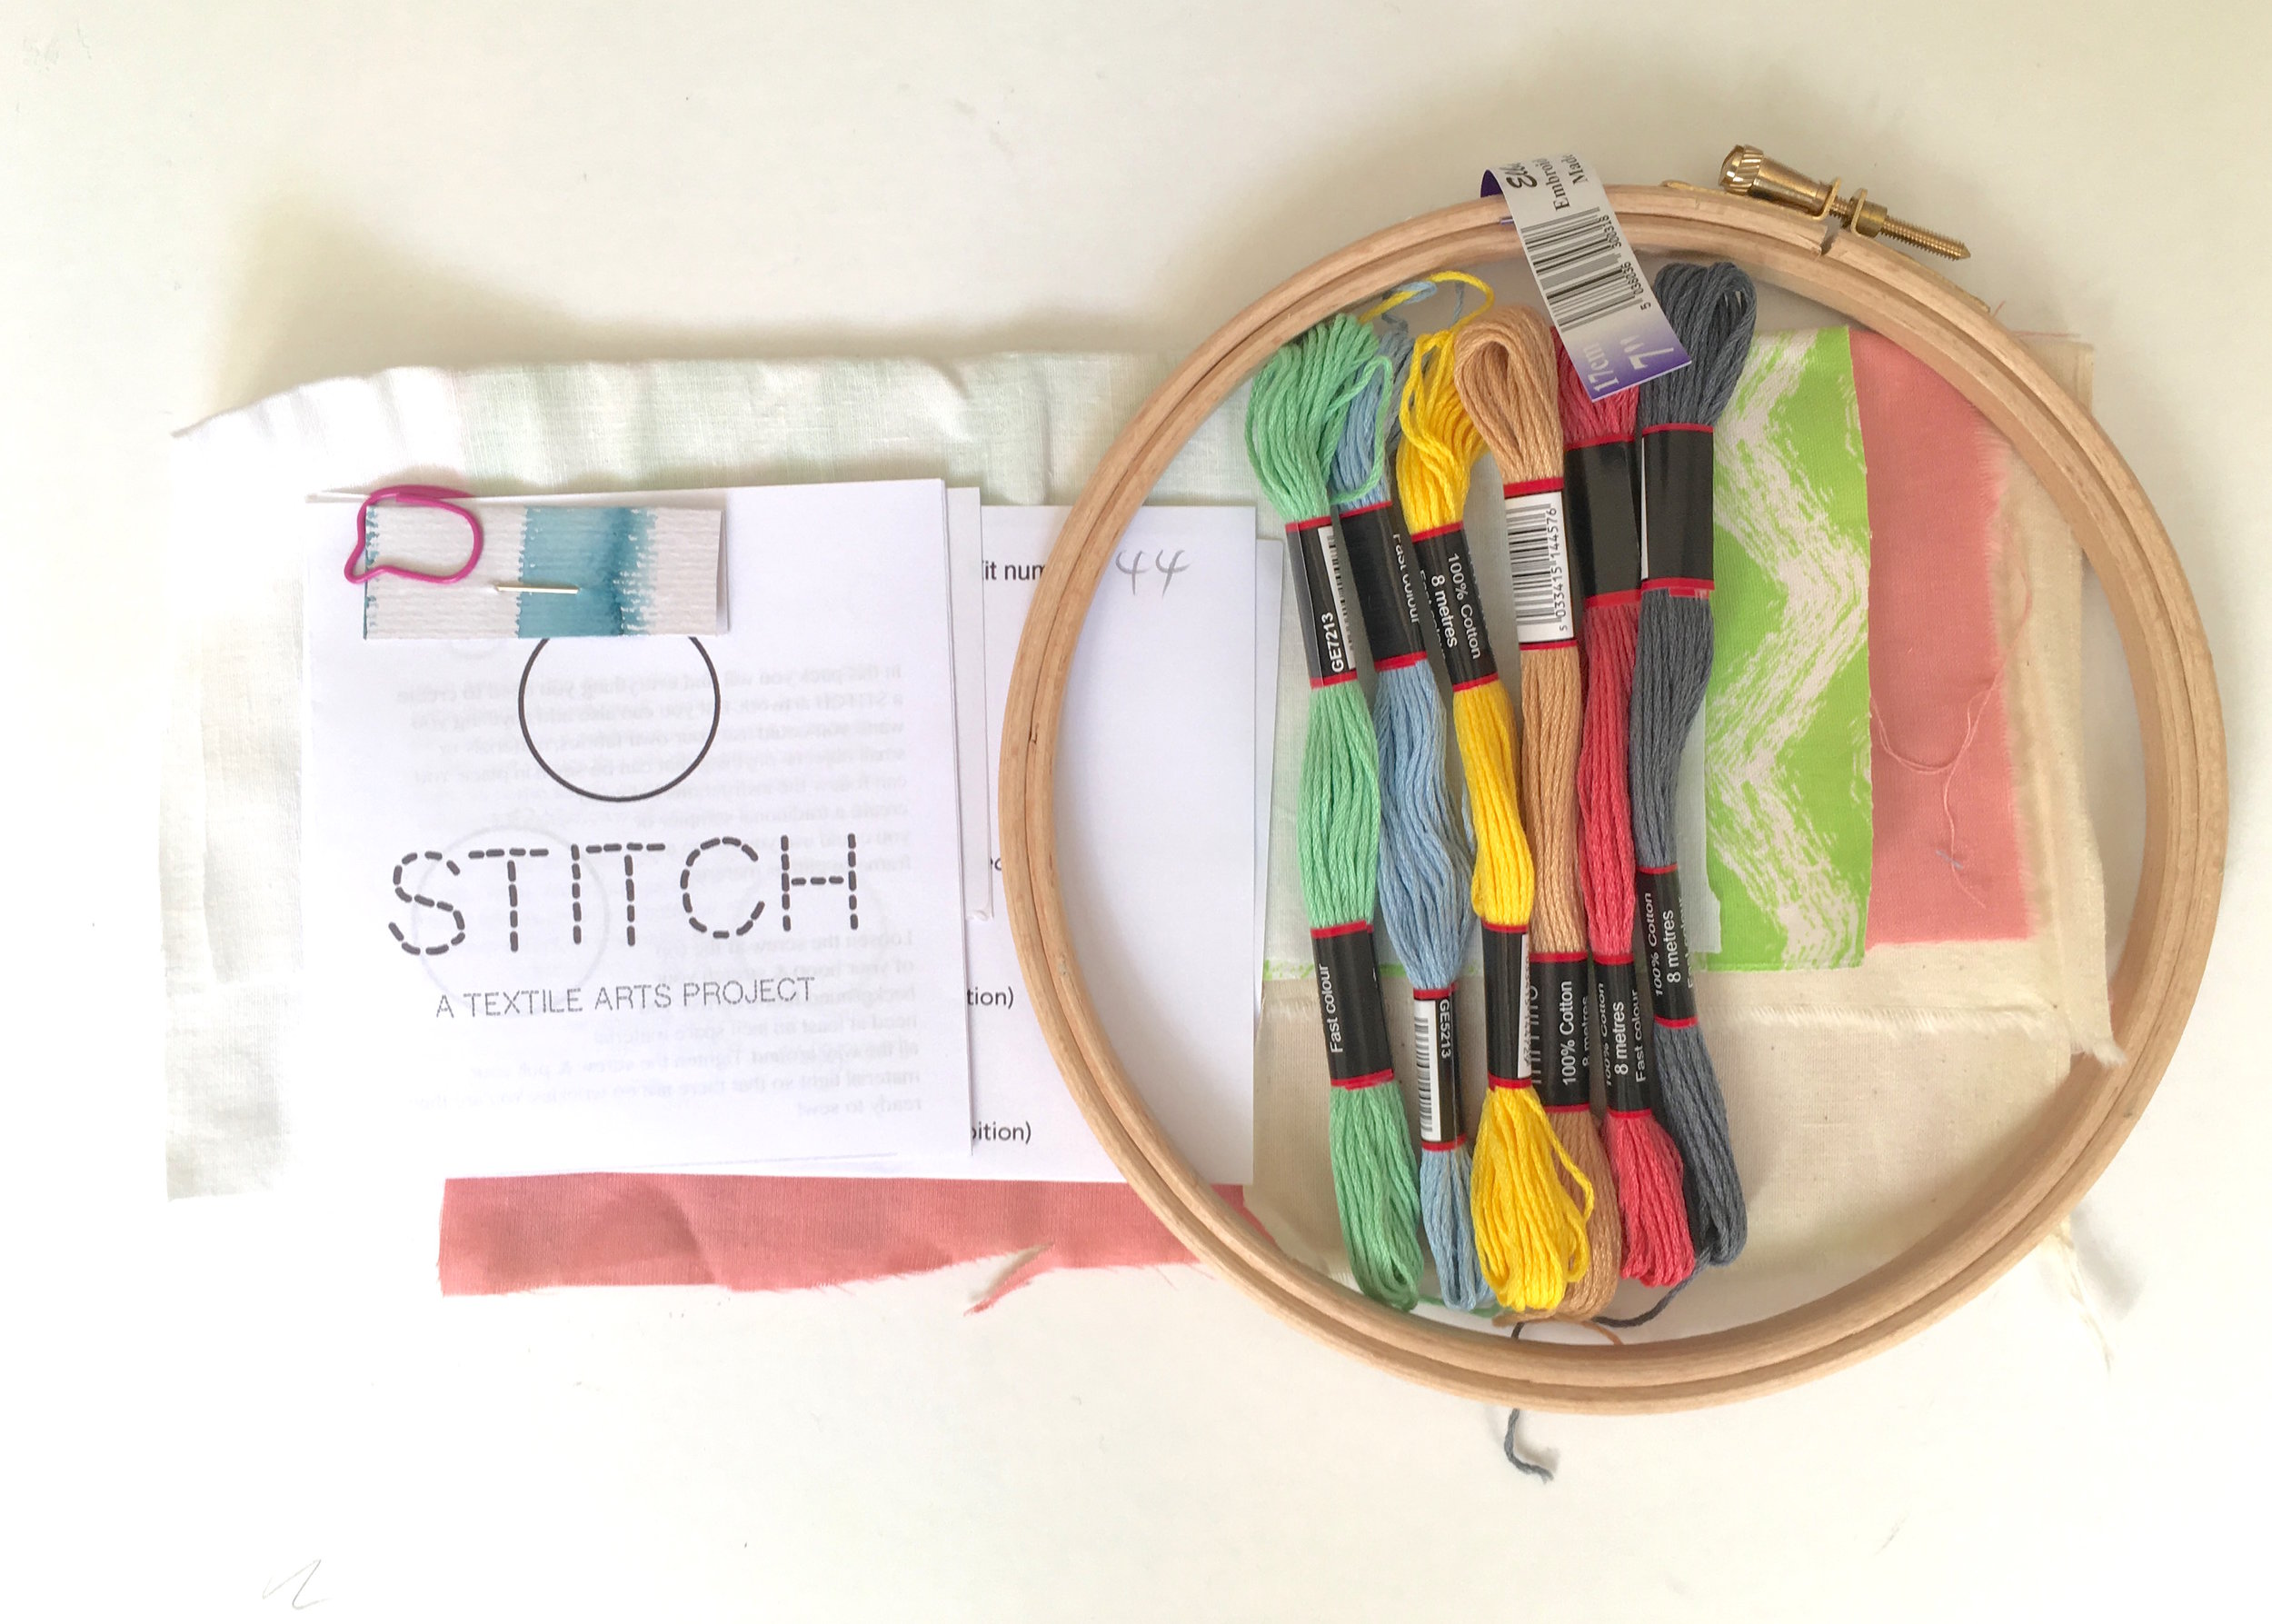 The contents of your STITCH pack should look a bit like this. Obviously the materials will vary, but you should expect to find an embroidery hoop, a selection of embroidery threads, a choice of fabrics, an instruction leaflet, address label, sewing needle (in a folded piece of card) and an information leaflet to fill in. -